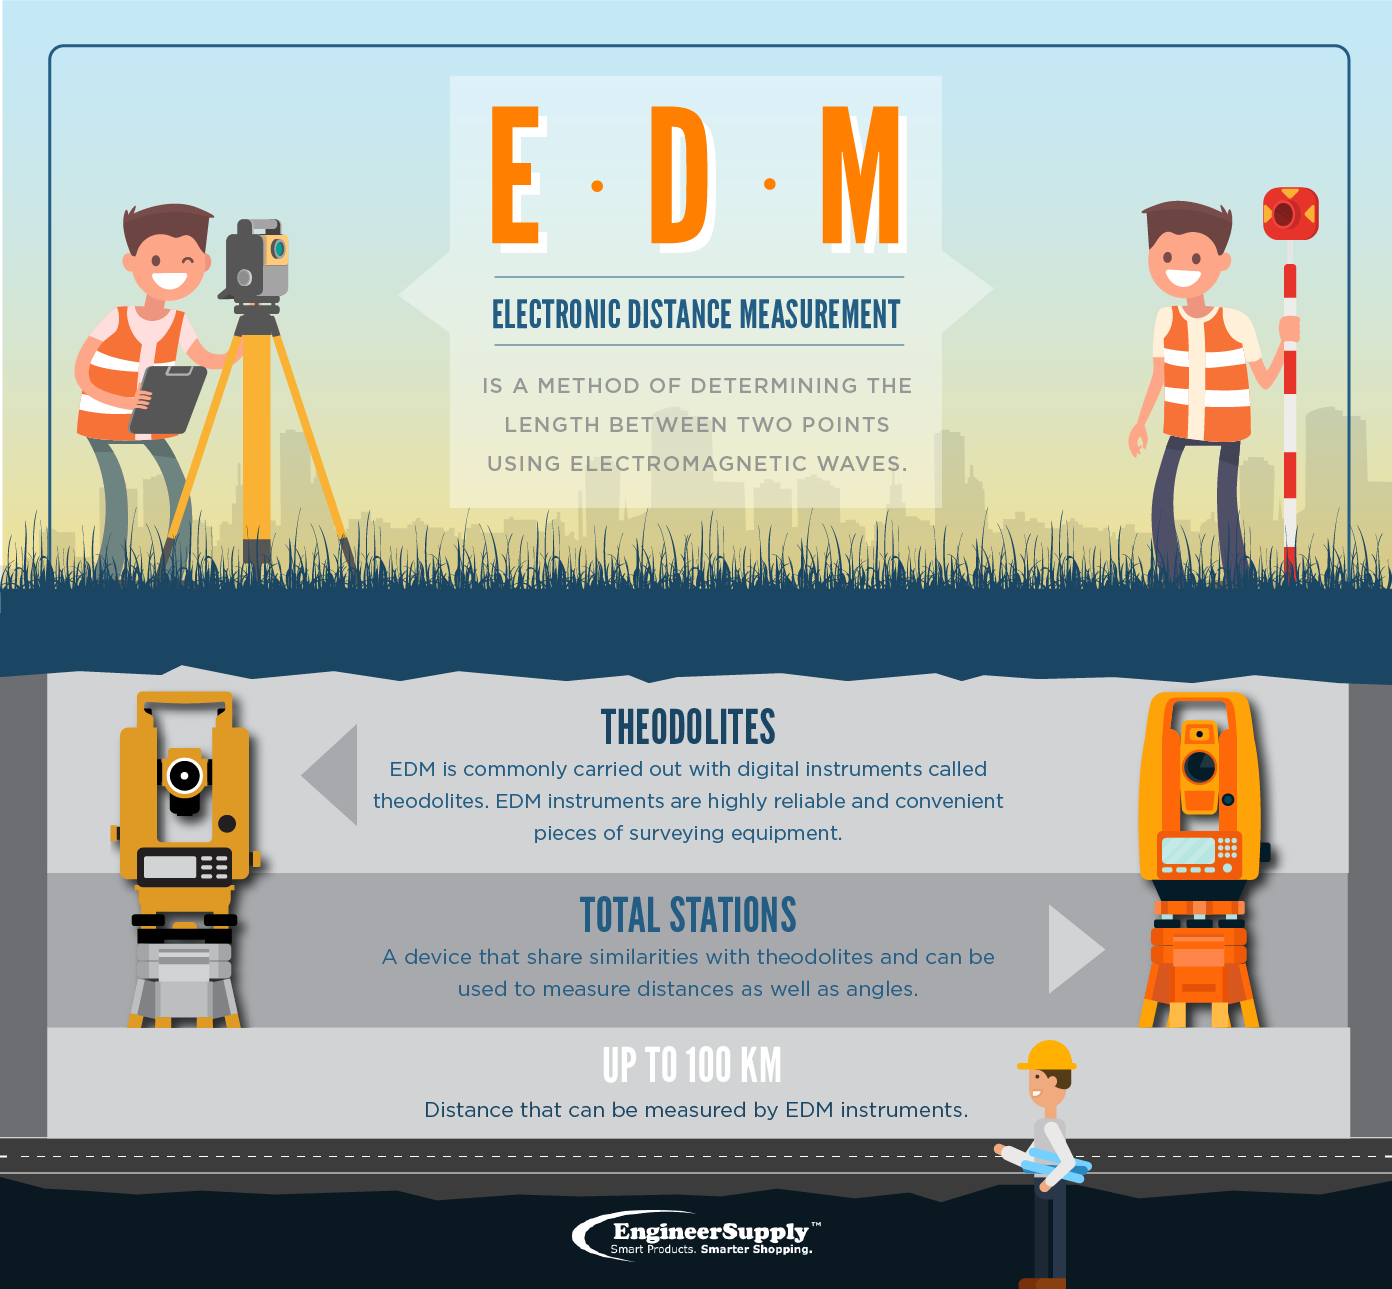 Electronic distance measurement in surveying